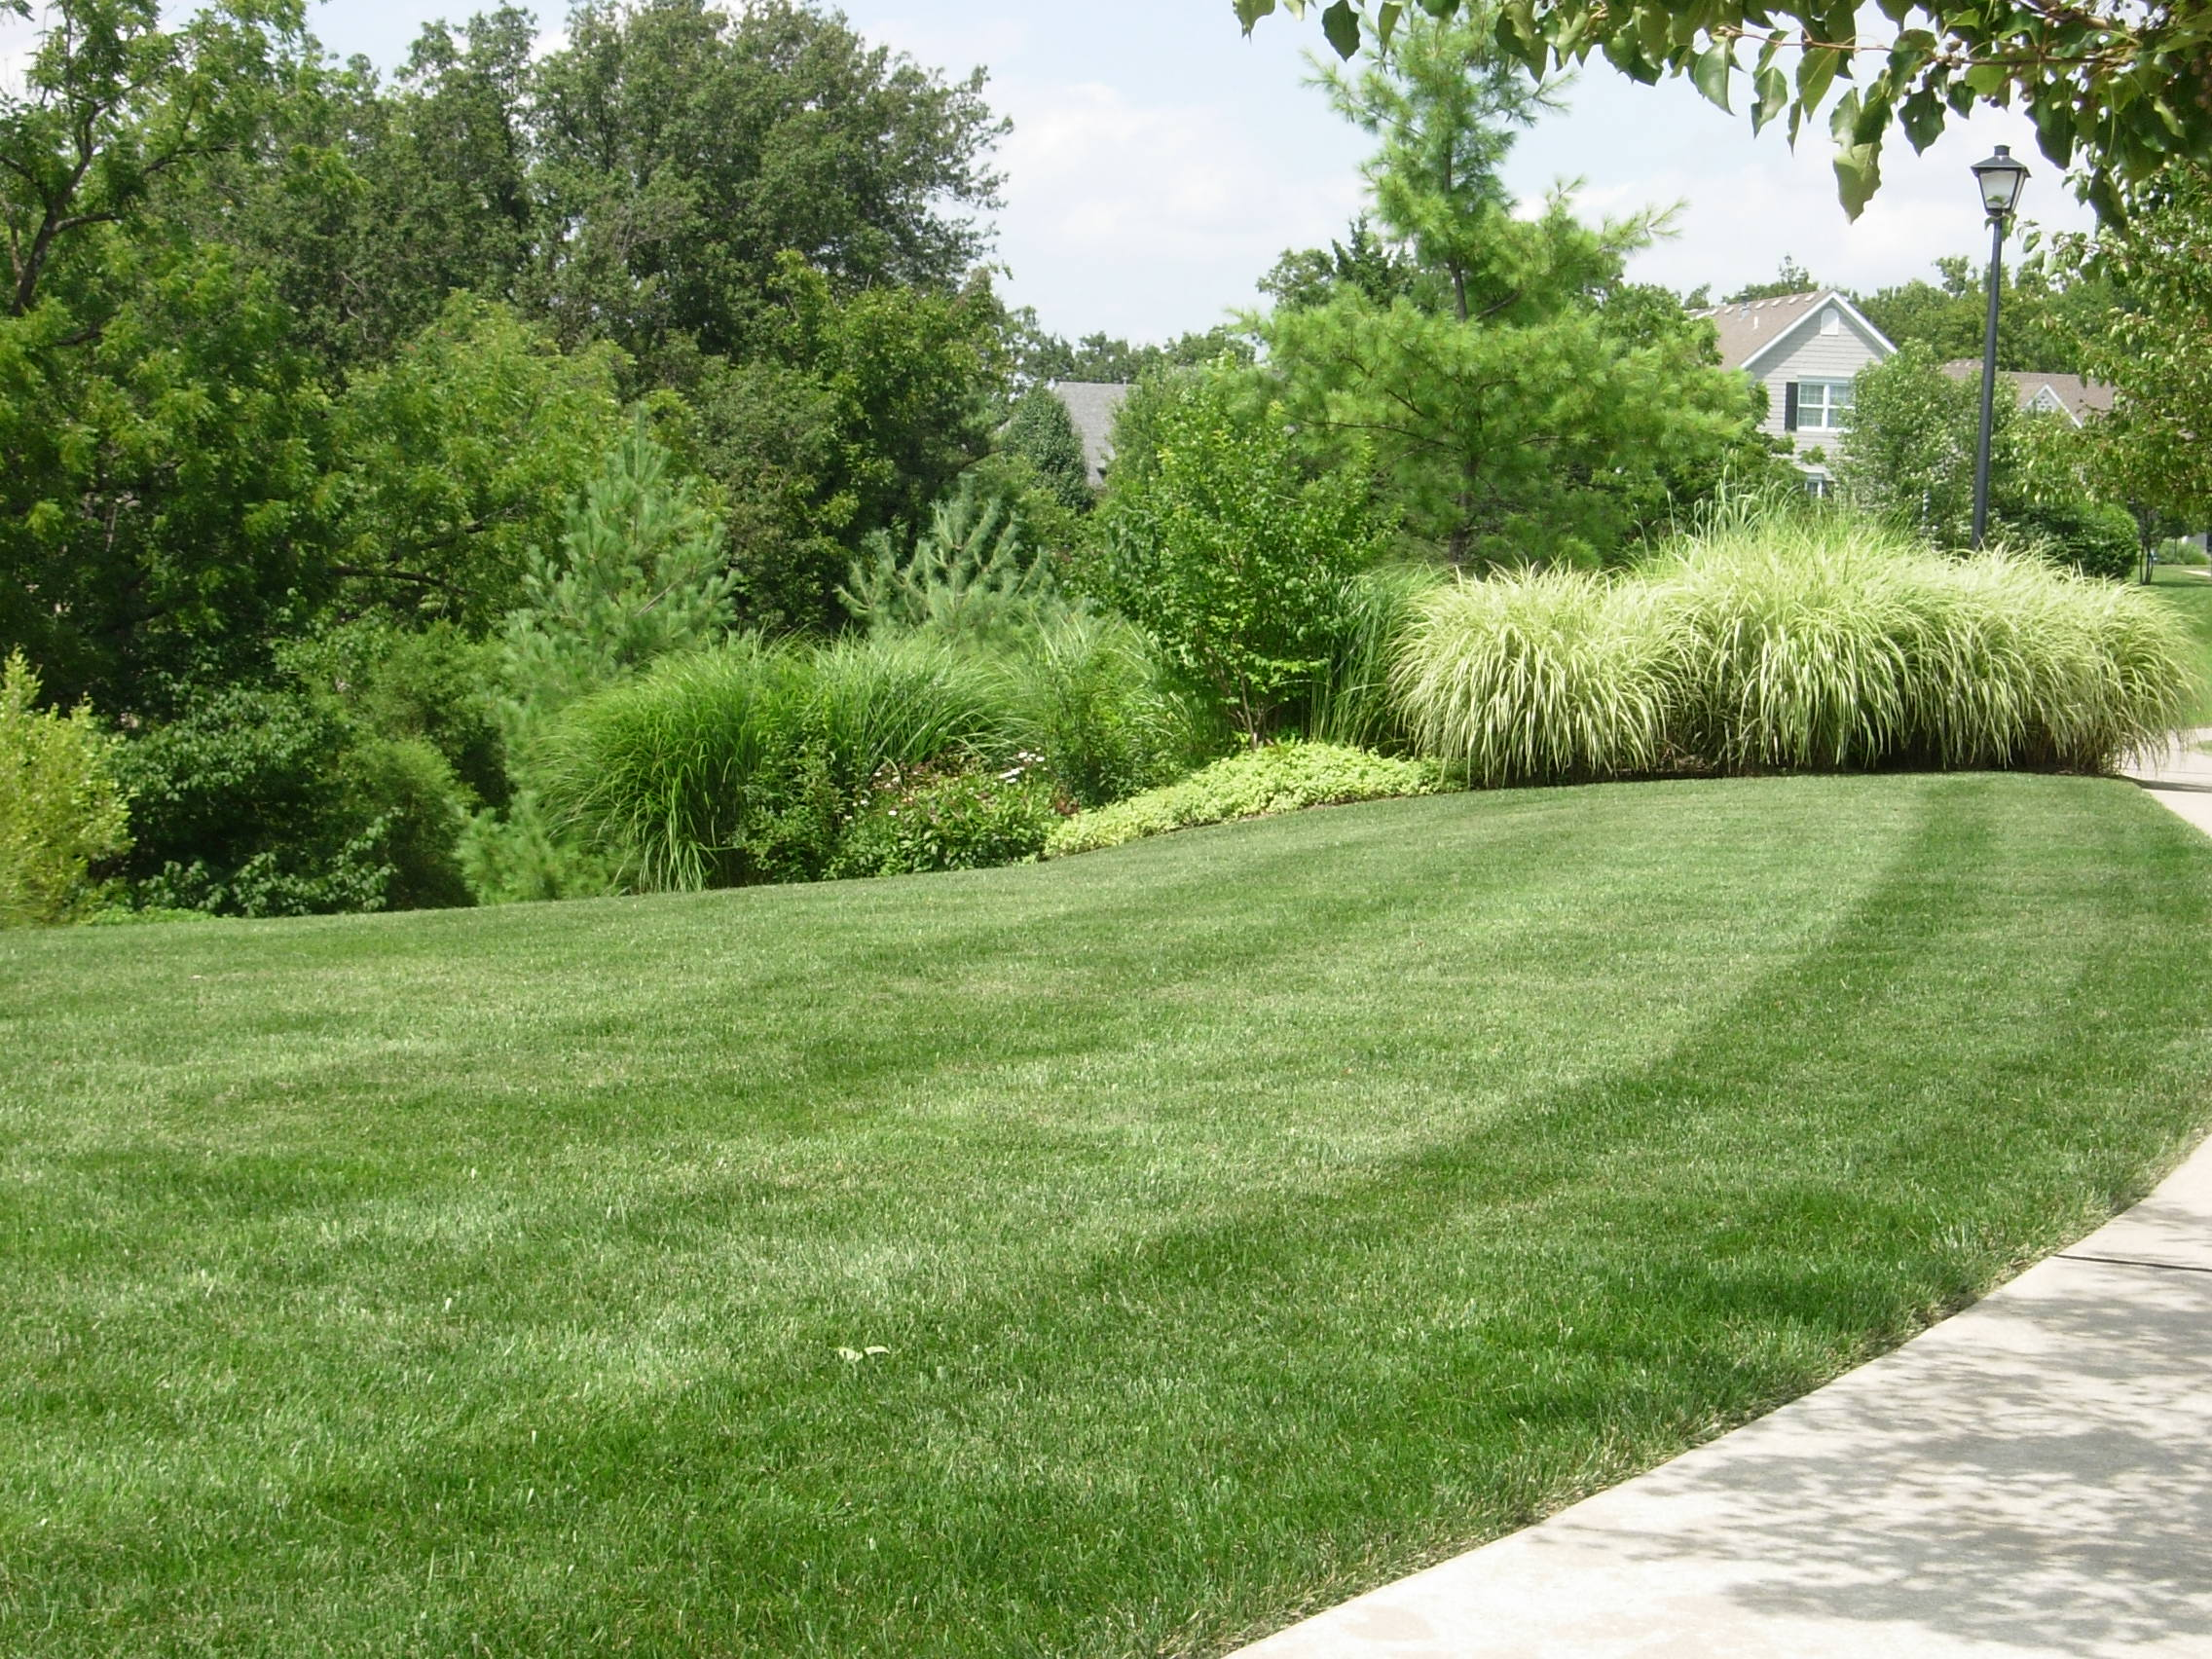 4 seasons services, lawn care services, lawn treatments, turf care, lawn care, caring for your lawn, grass fertilization, fertilizer services, akron ohio, canton ohio